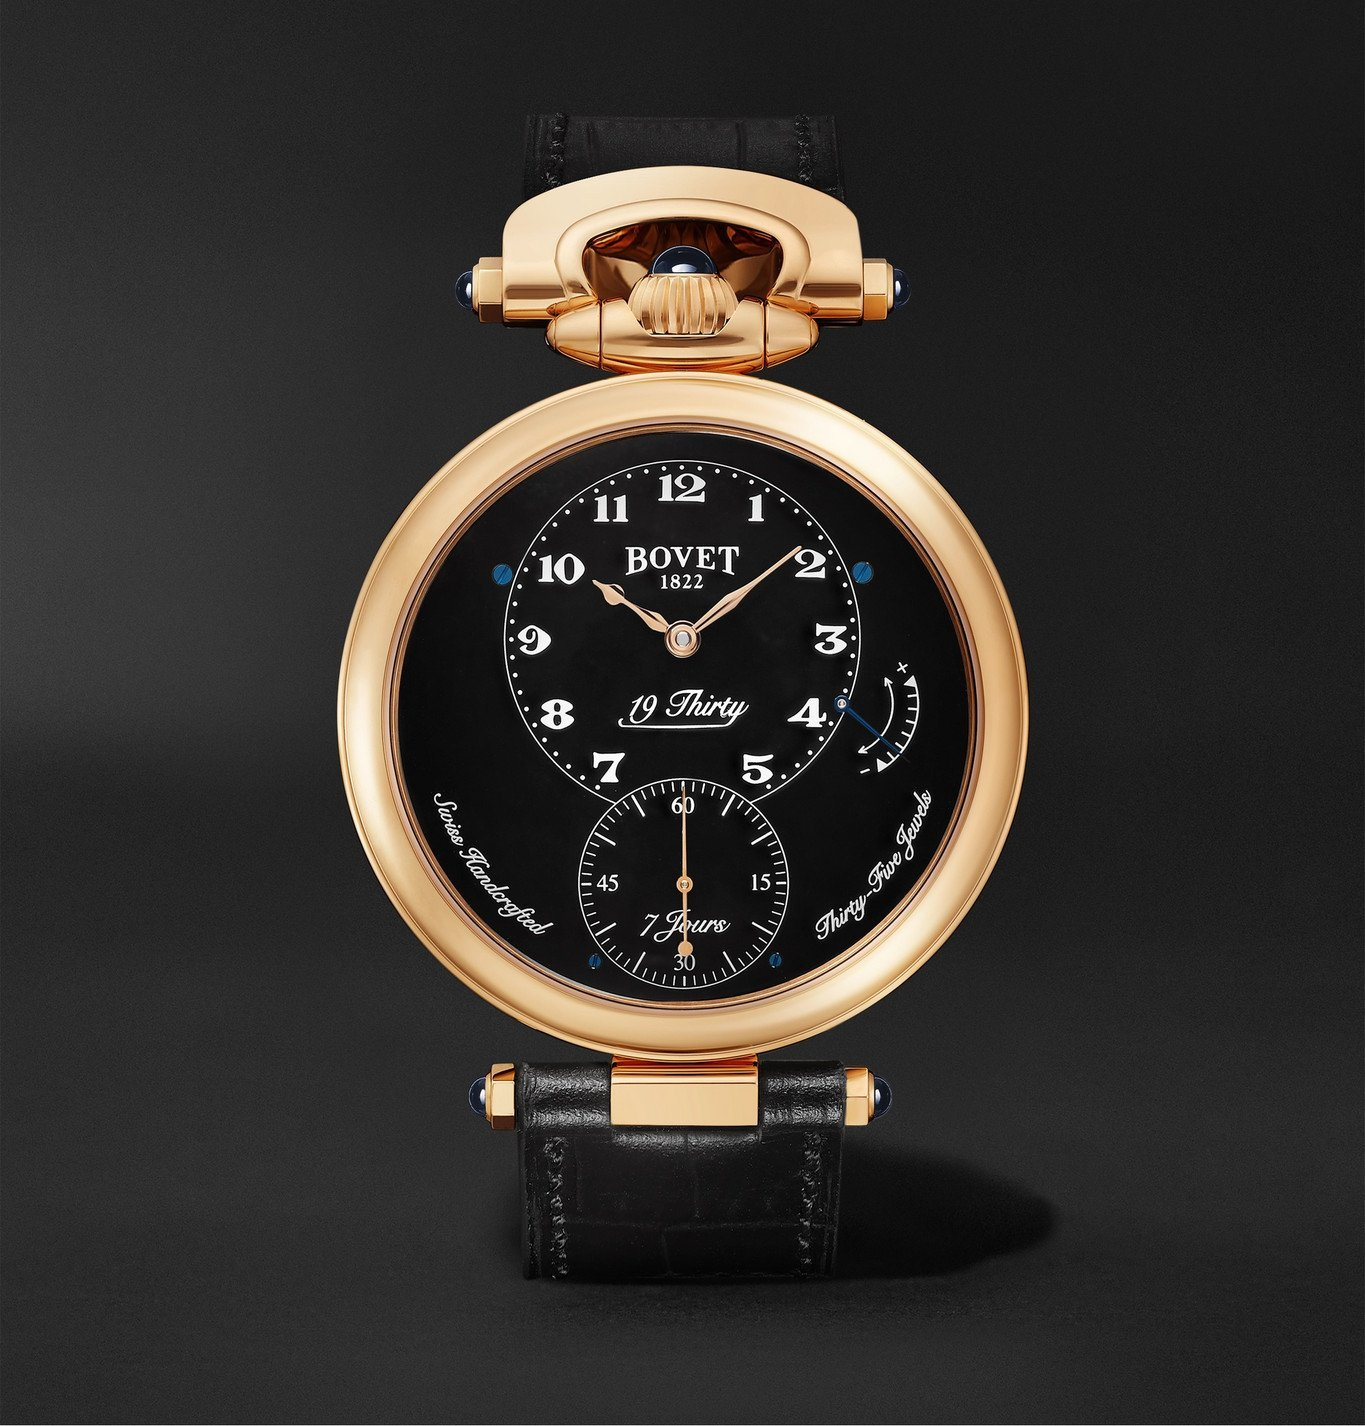 Photo: Bovet - 19Thirty Fleurier Hand-Wound 42mm 18-Karat Rose Gold and Leather Watch, Ref. No. NTR0029 - Black